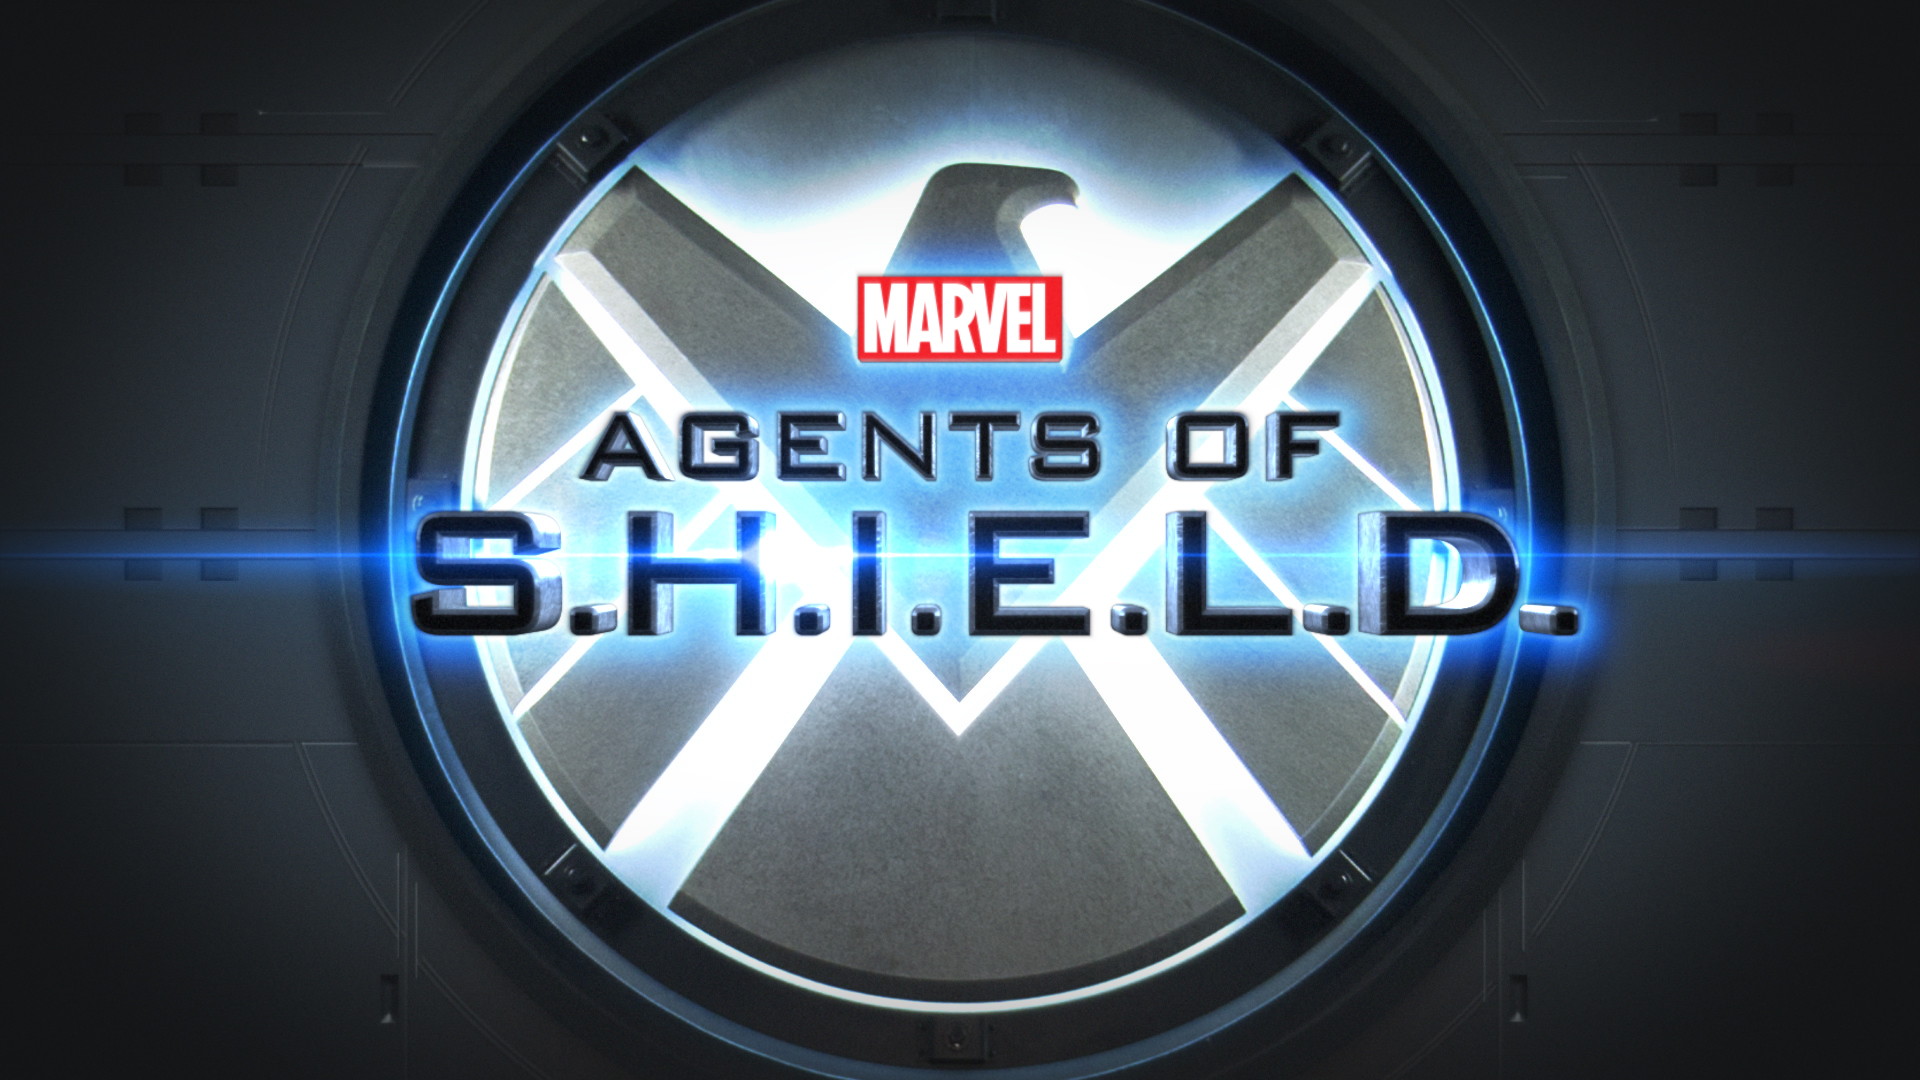 Agents-of-S-H-I-E-L-D-agents-of-shield-35640423-1920-1080